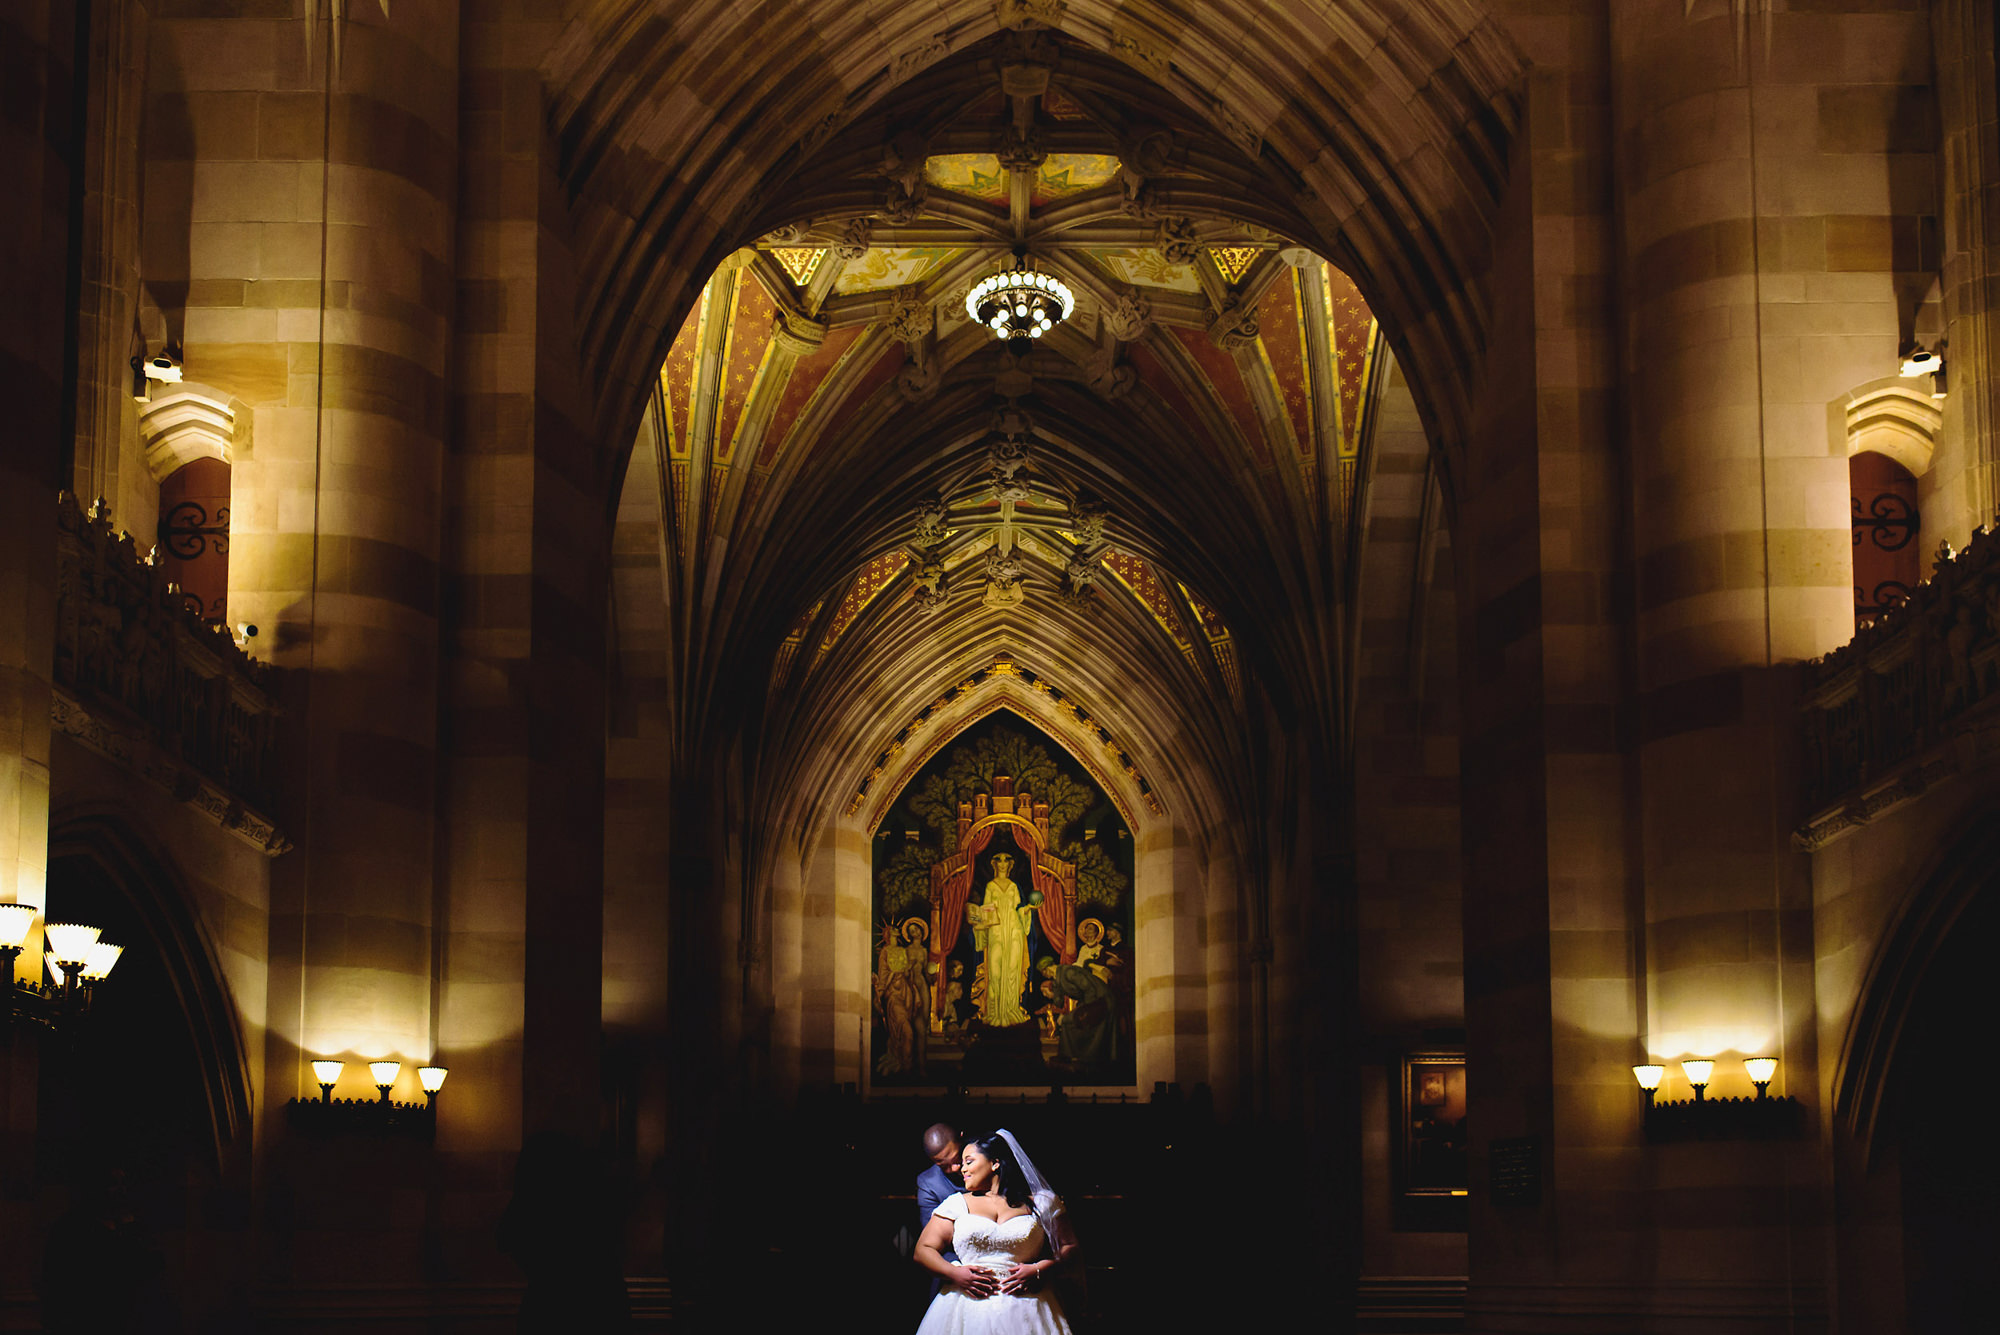 Groom hugs ride in gothic cathedral - photo by Alakija Studios